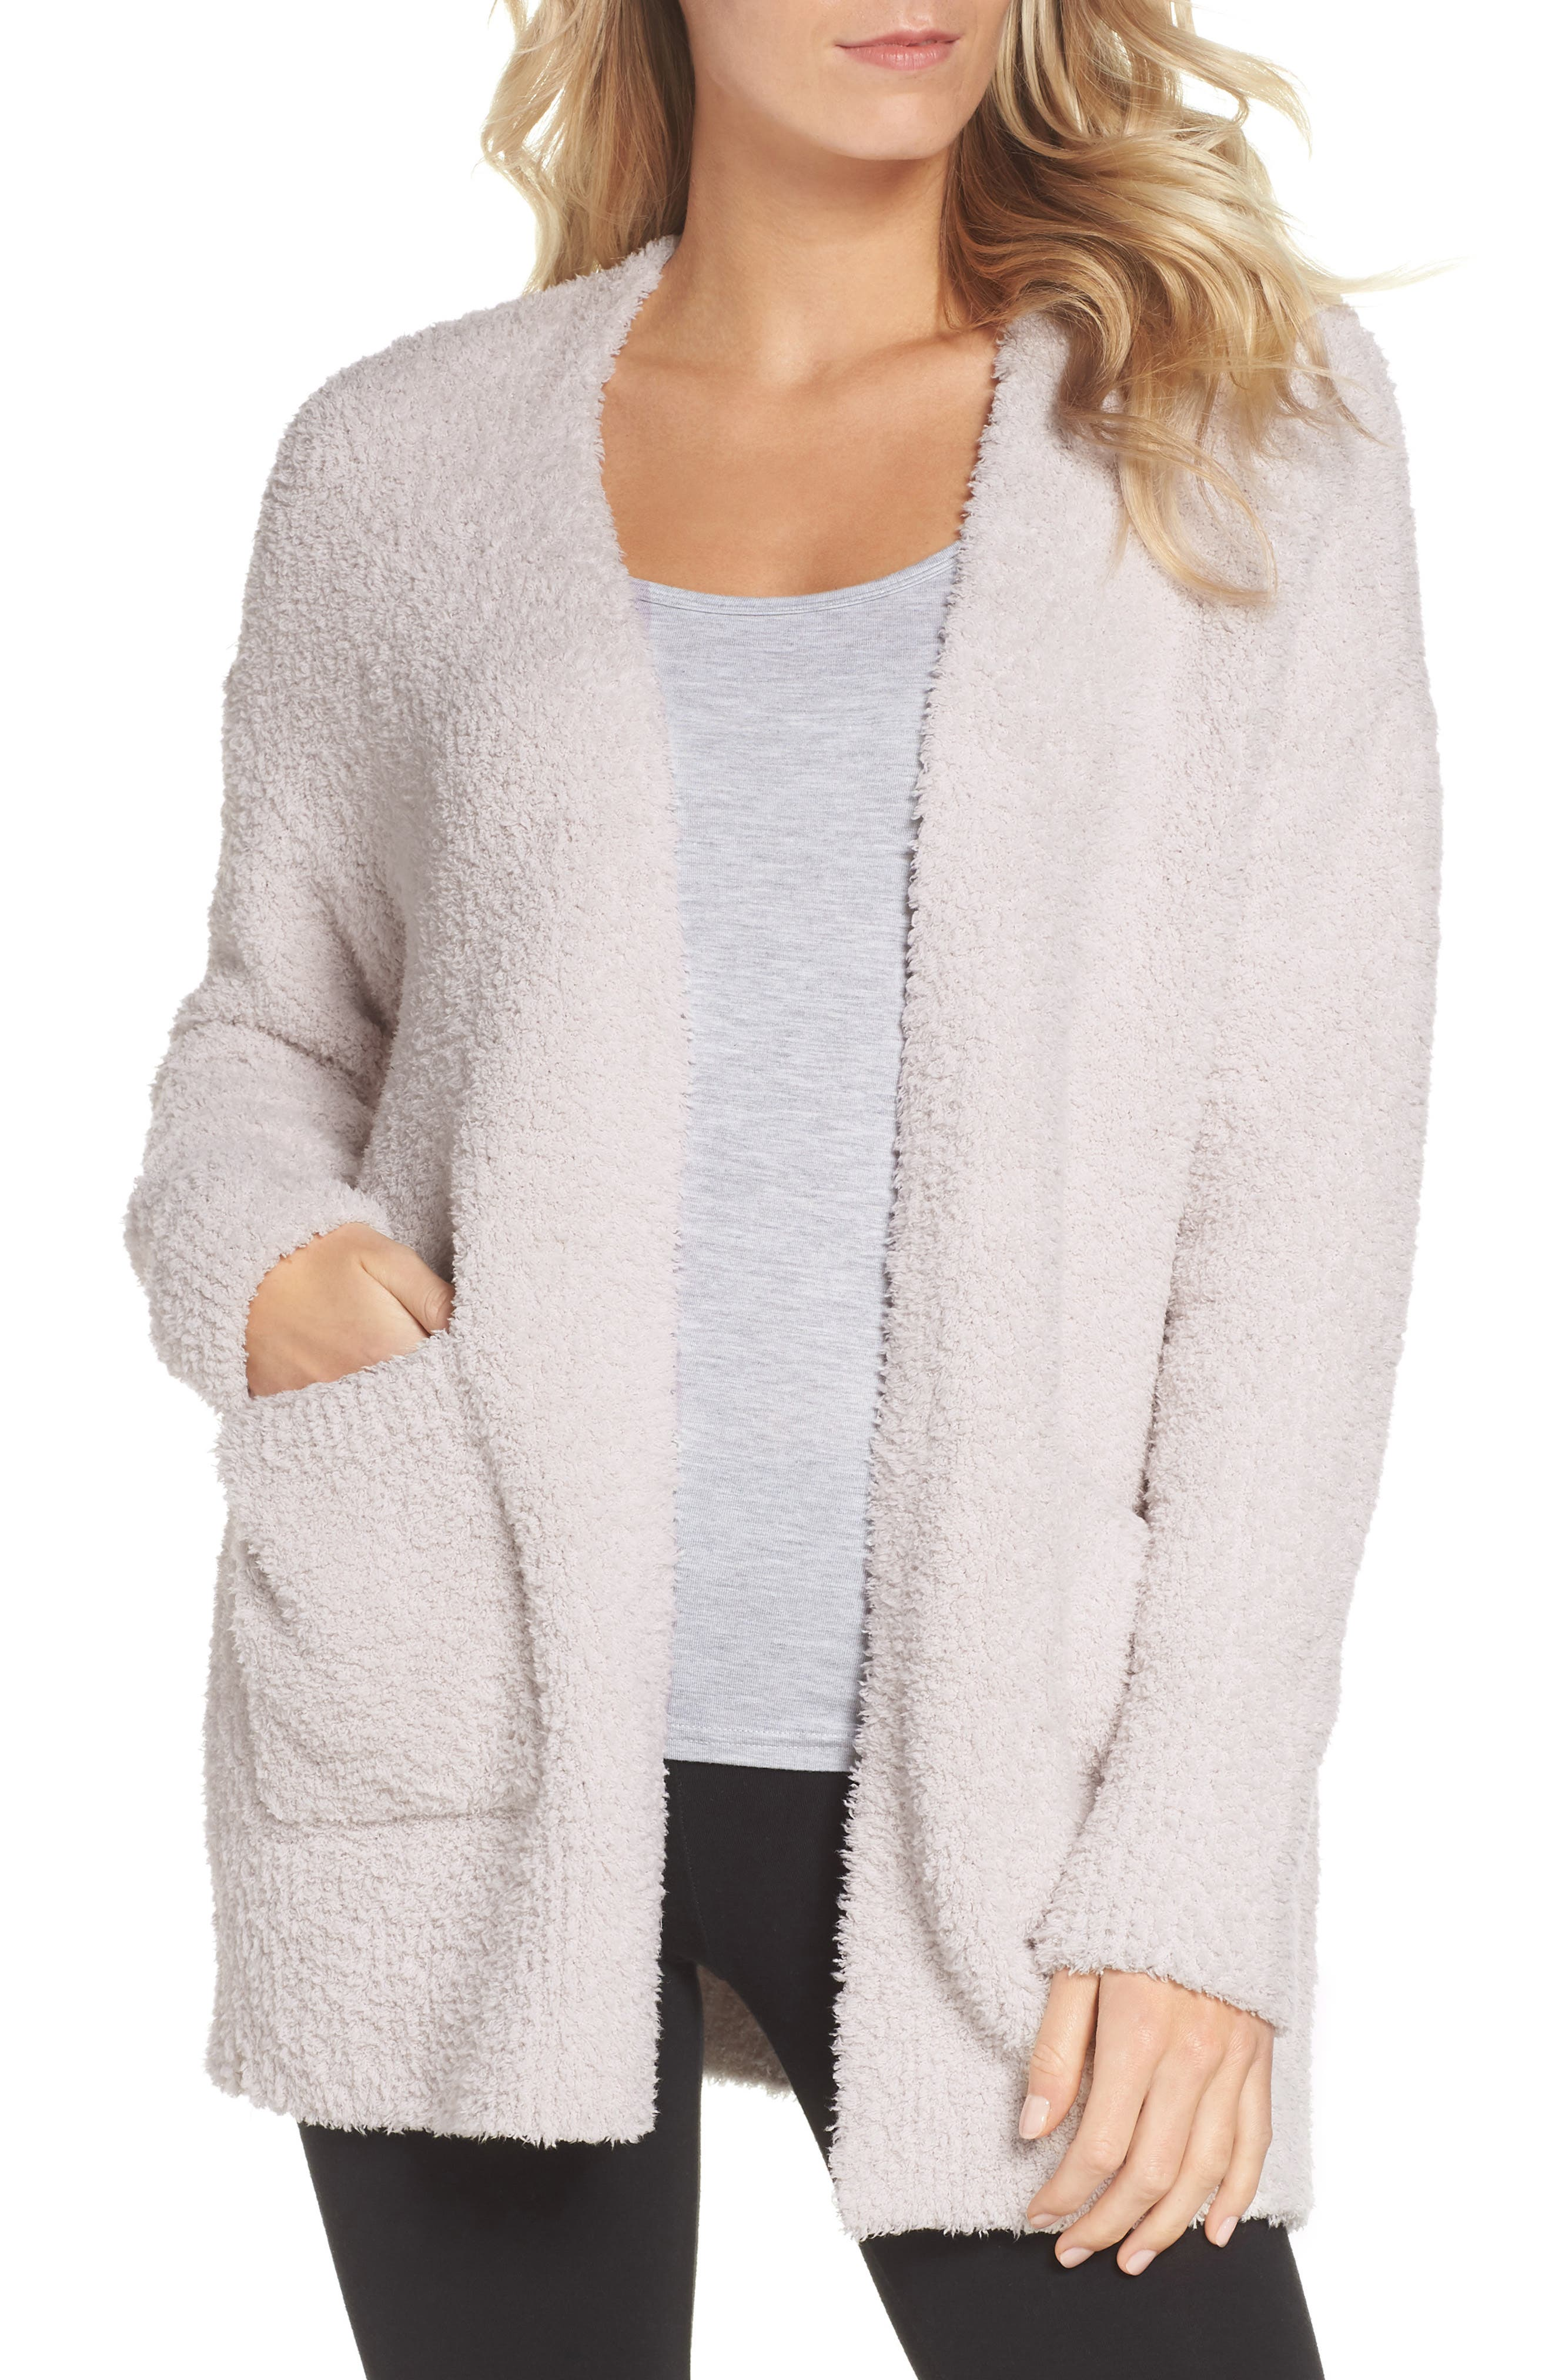 CozyChic<sup>®</sup> Cardigan,                             Main thumbnail 1, color,                             ALMOND